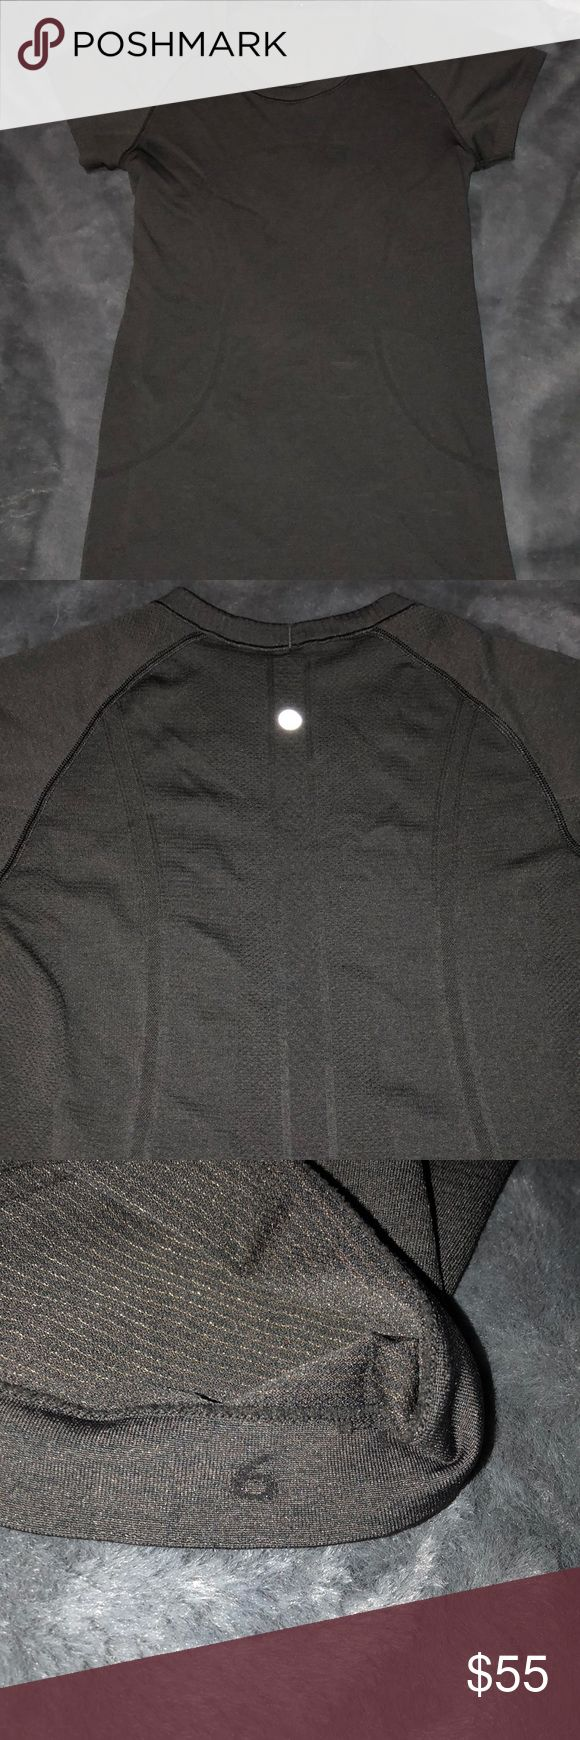 Lululemon Swiftly Tech Short Sleeve Crew In perfect condition, only worn twice. Very good for working out or just wearing casually! lululemon athletica Tops